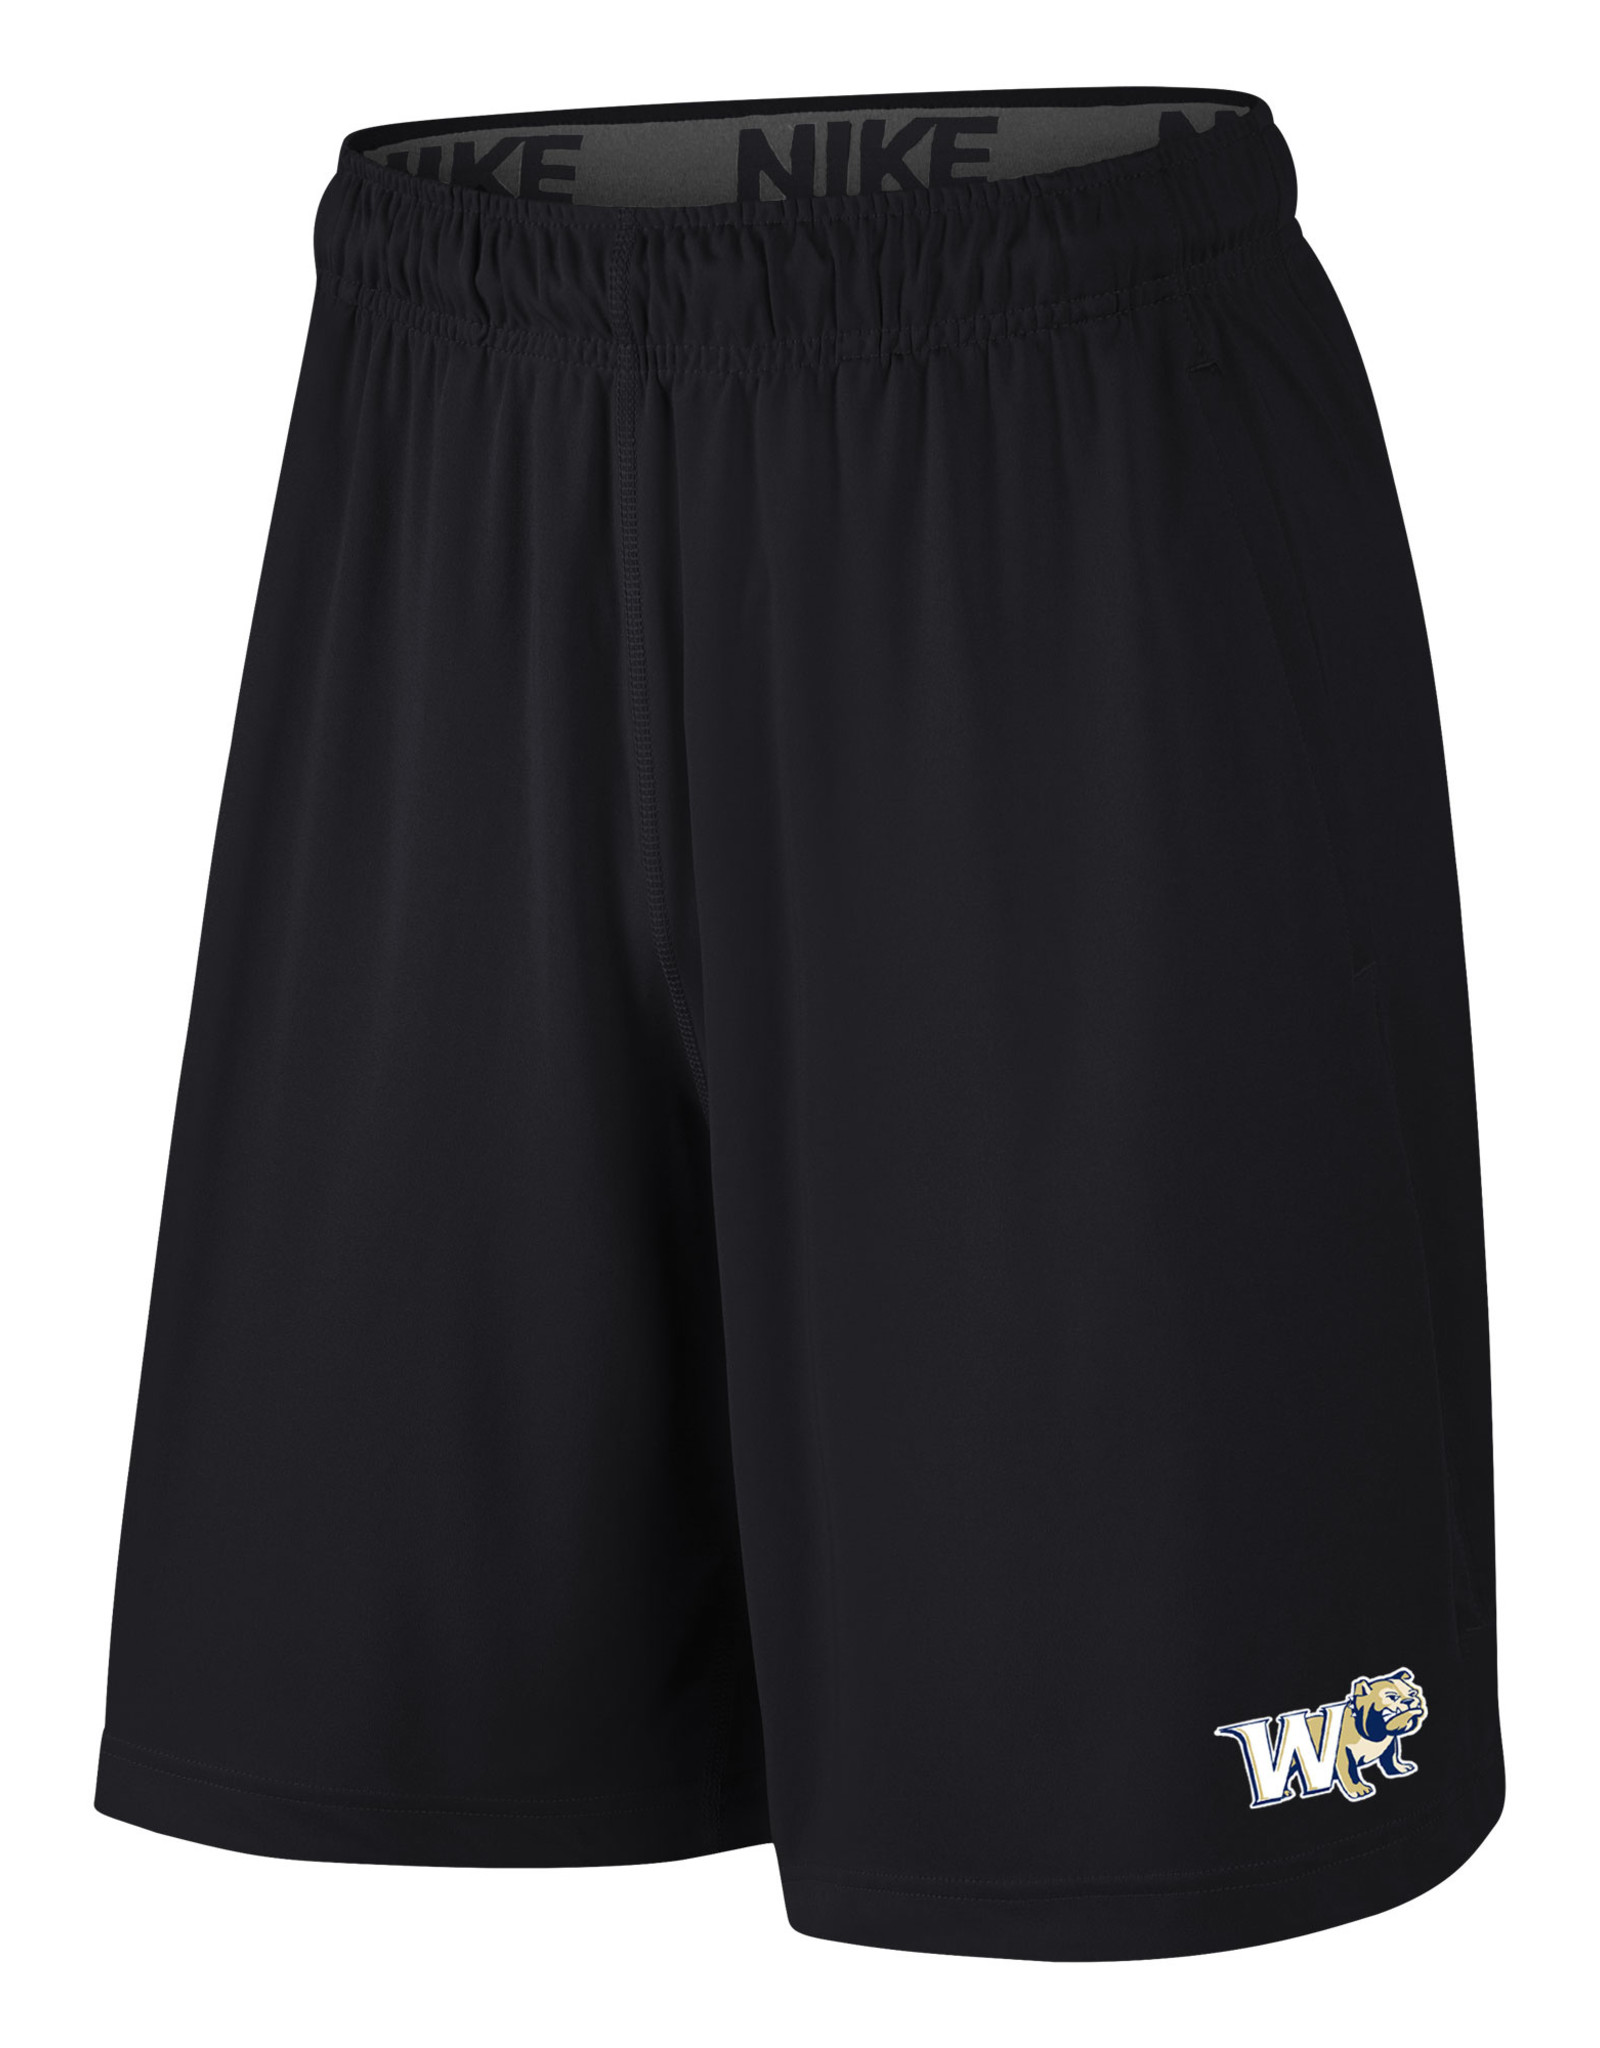 Nike Black Fly Shorts W Full Dog